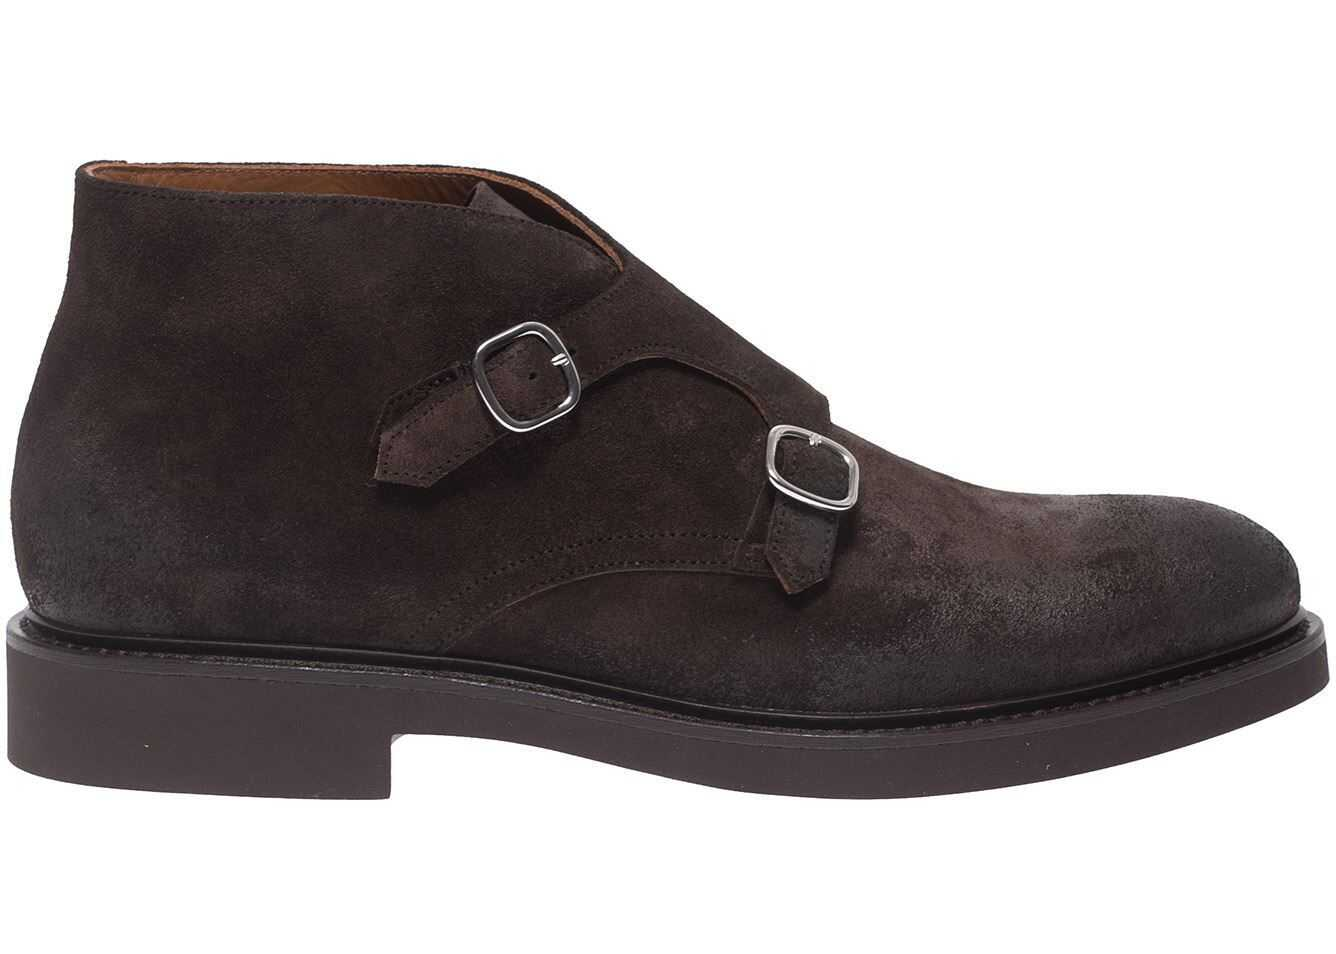 Doucal's Vintage Effect Monk-Strap In Brown DU2700GENOUF011TM00 Brown imagine b-mall.ro